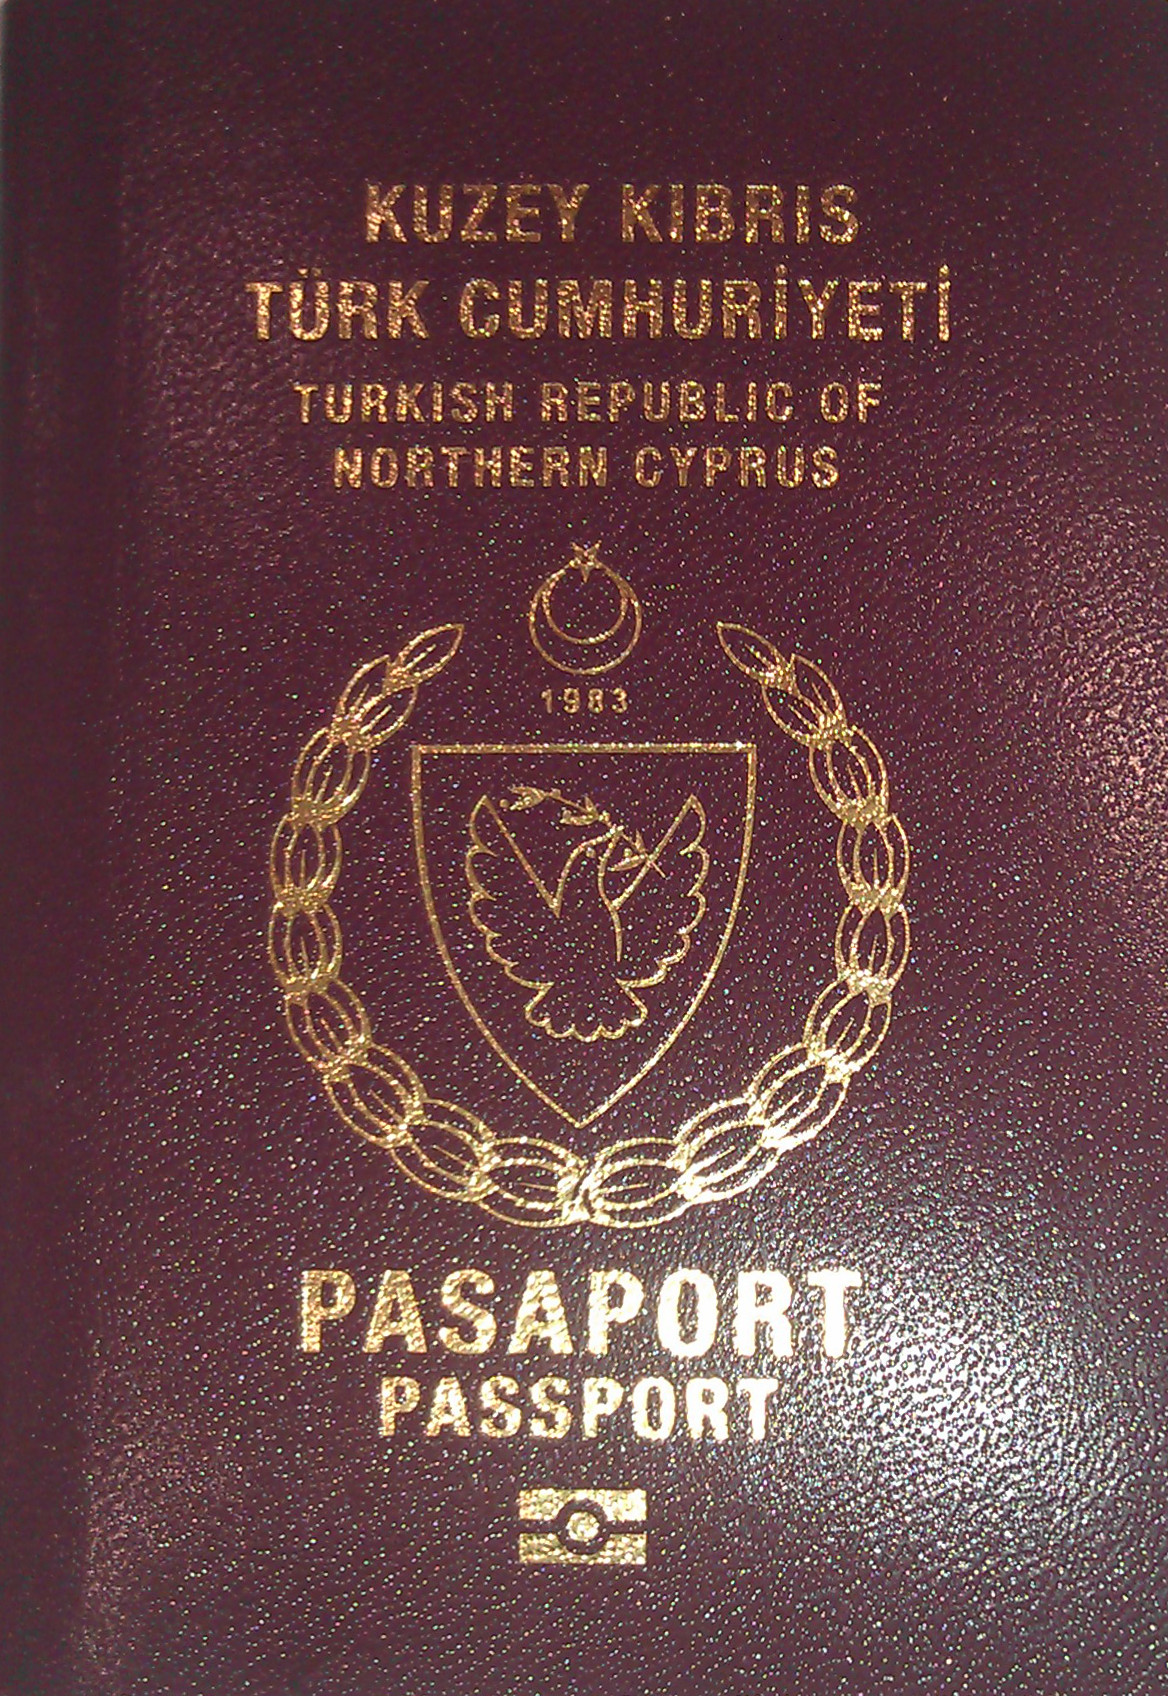 Northern cypriot passport wikipedia ccuart Choice Image